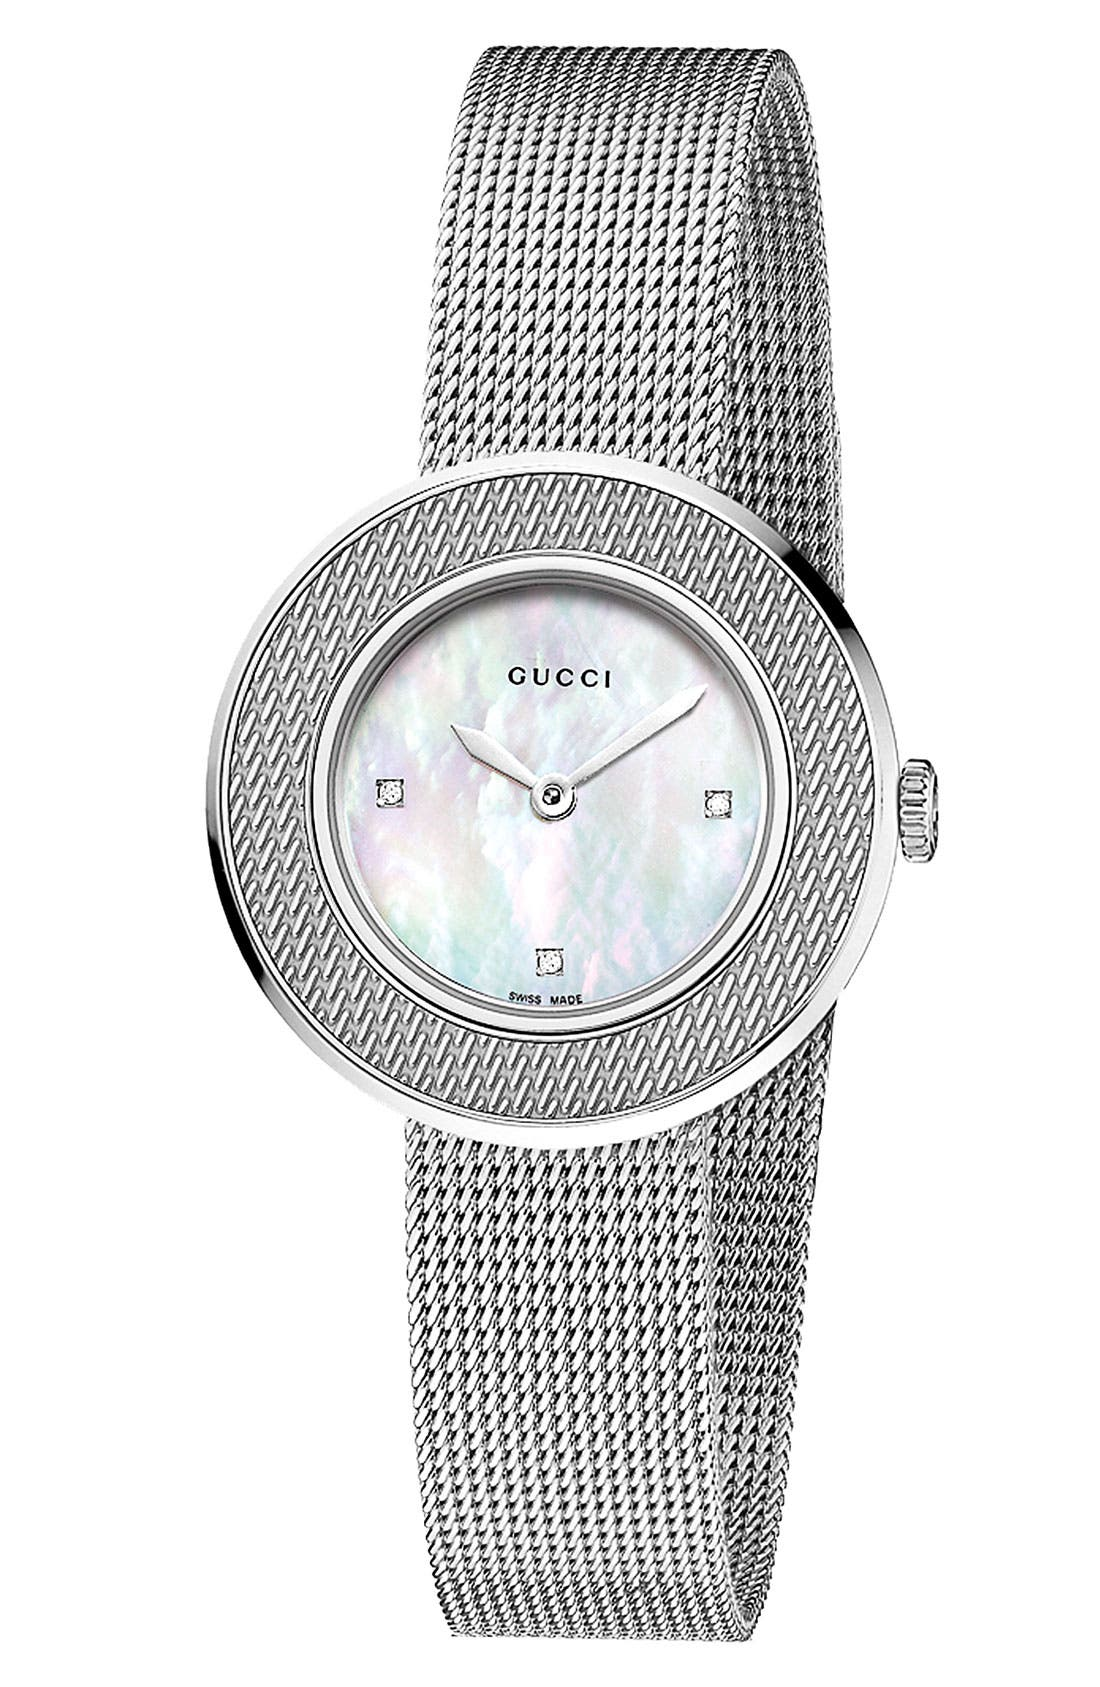 Alternate Image 1 Selected - Gucci 'U-Play' Round Diamond Dial Mesh Watch, 26mm